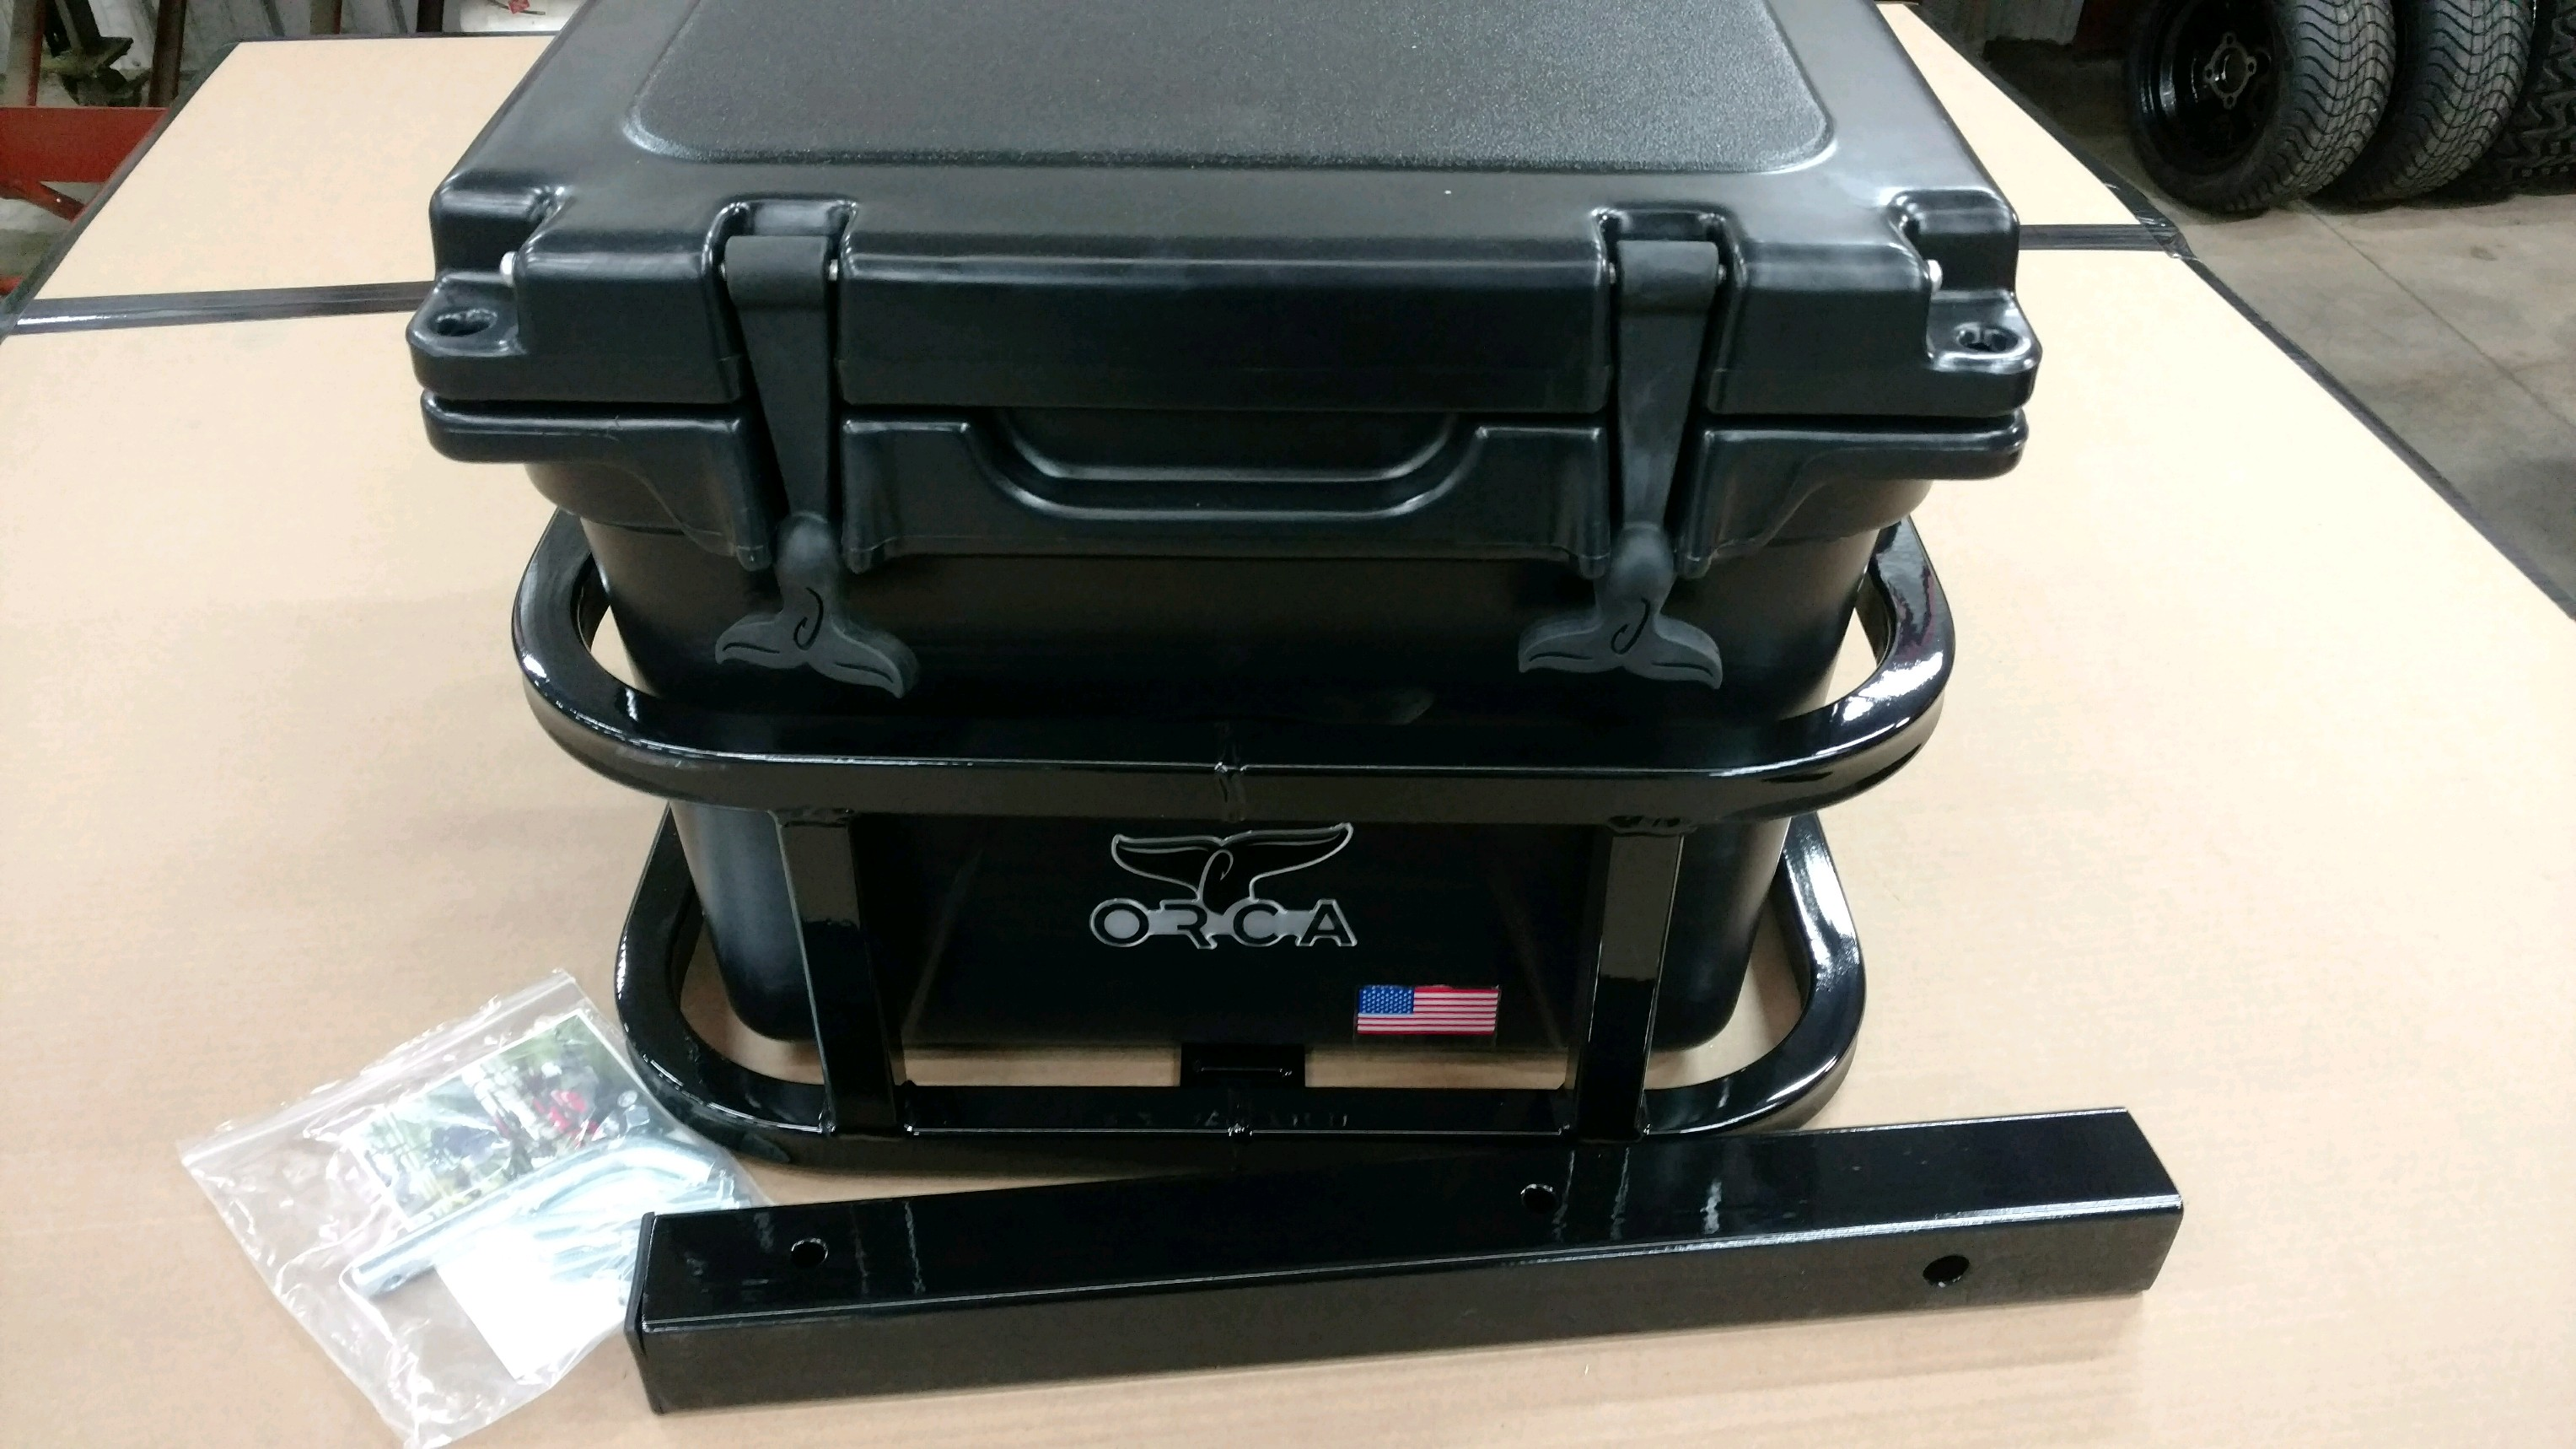 ORCA 20 Hitch Cooler Carrier